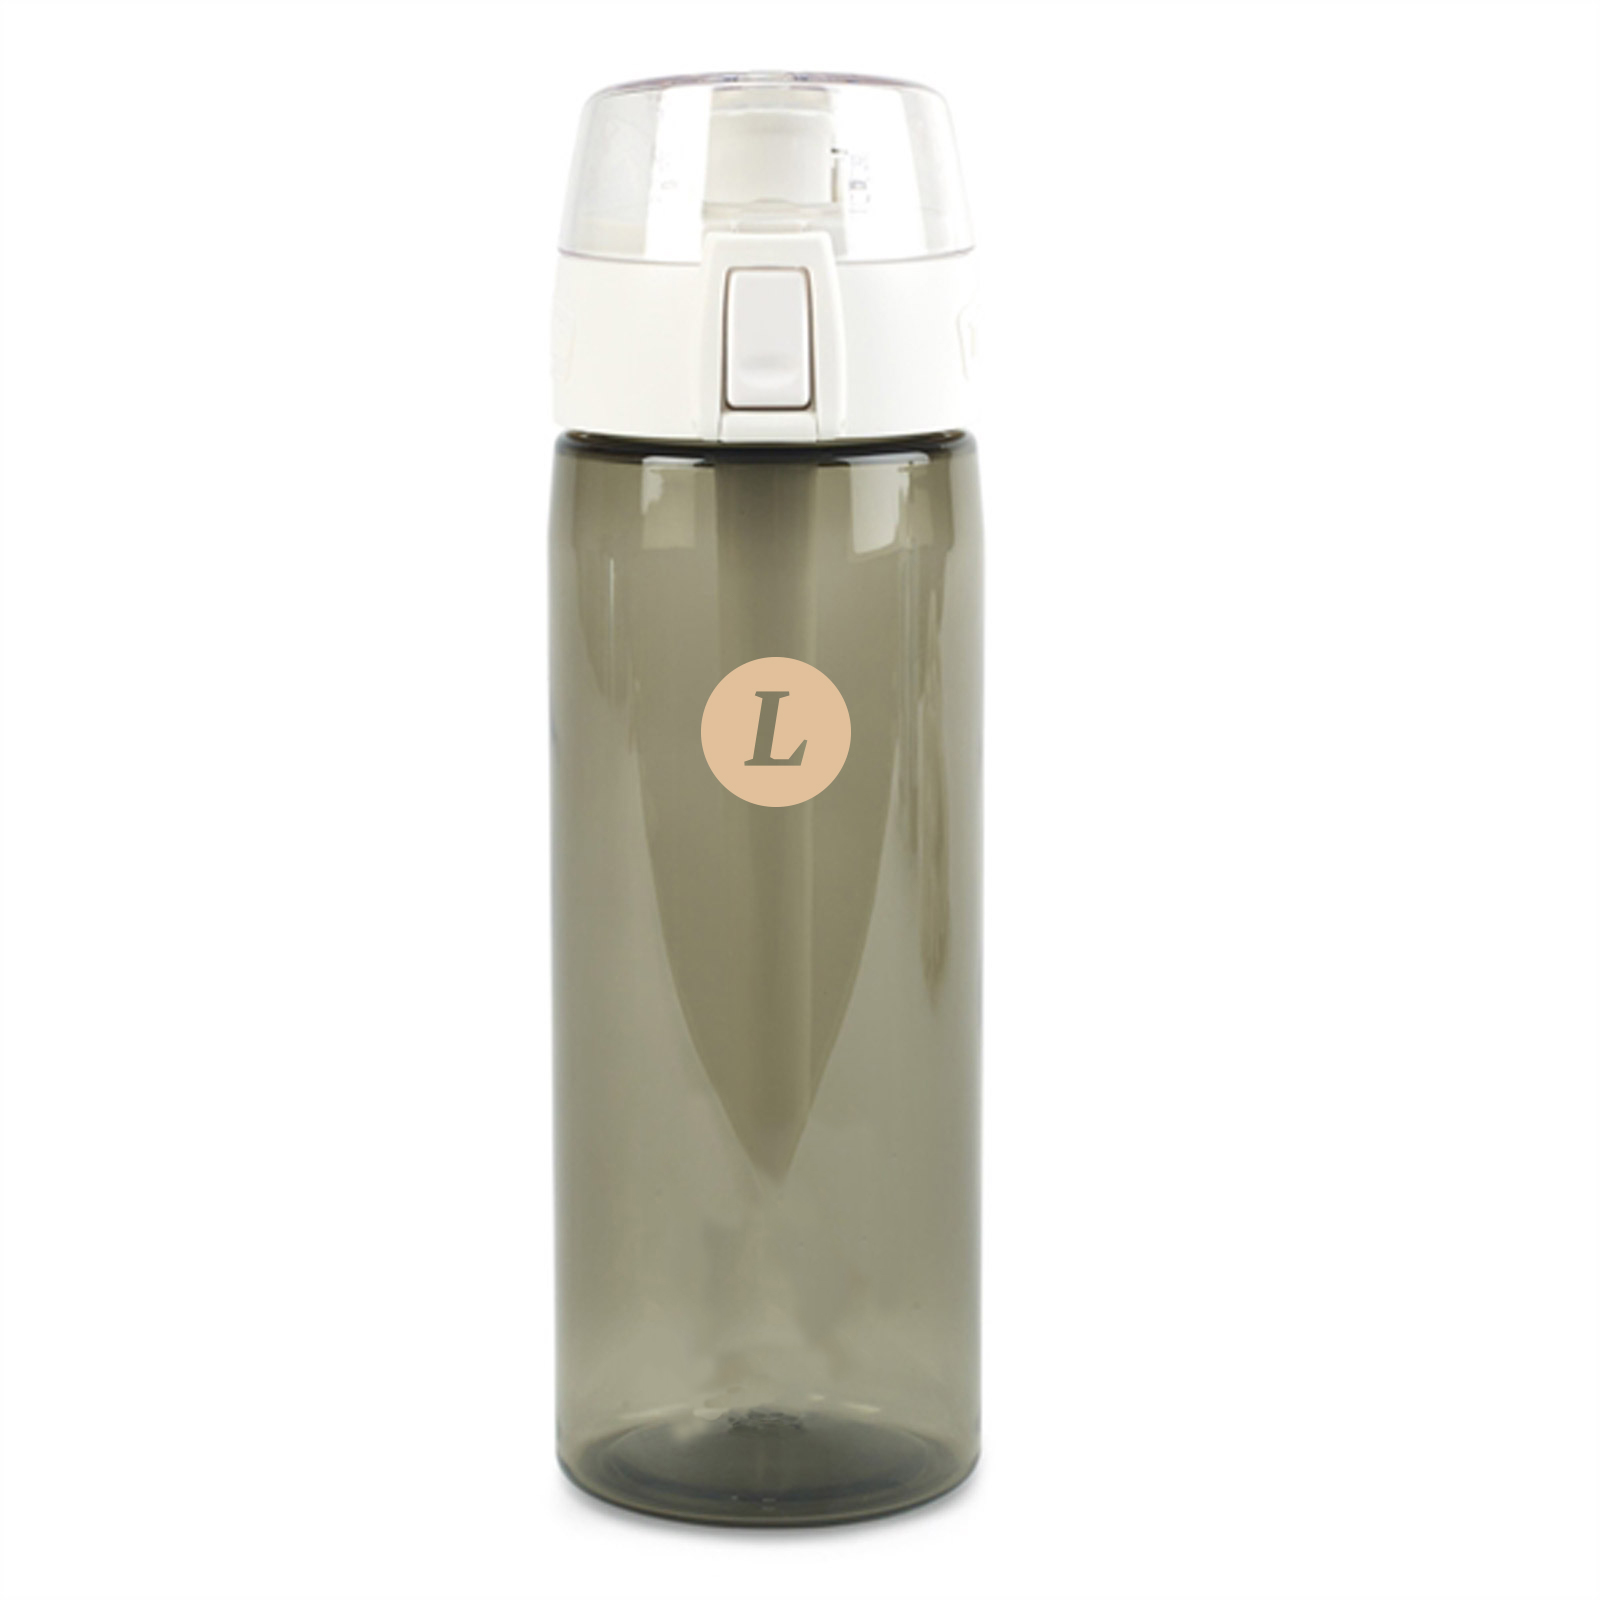 163705 connected hydration bottle one color one location imprint